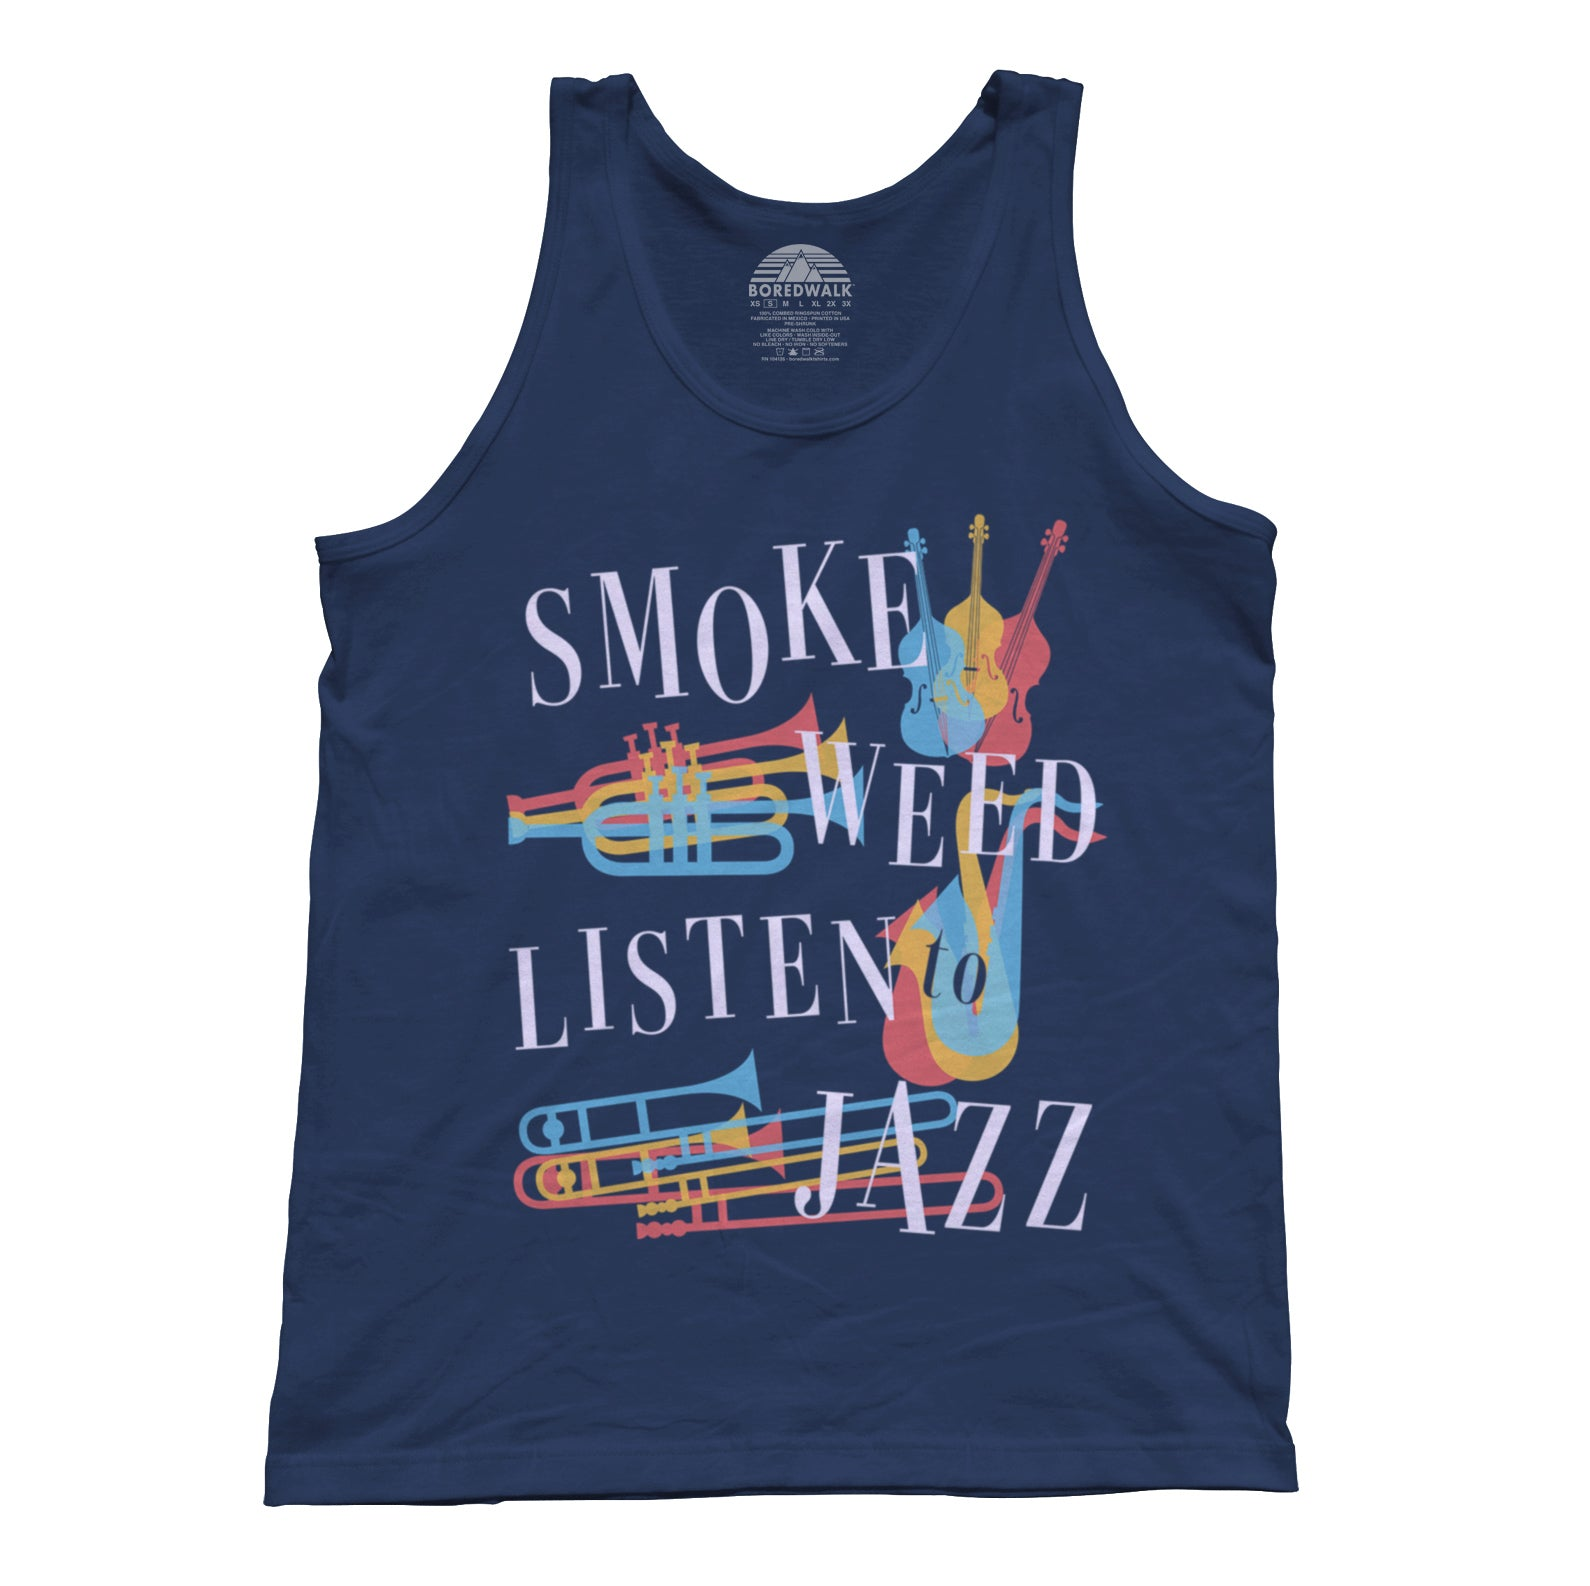 Unisex Smoke Weed Listen to Jazz Tank Top